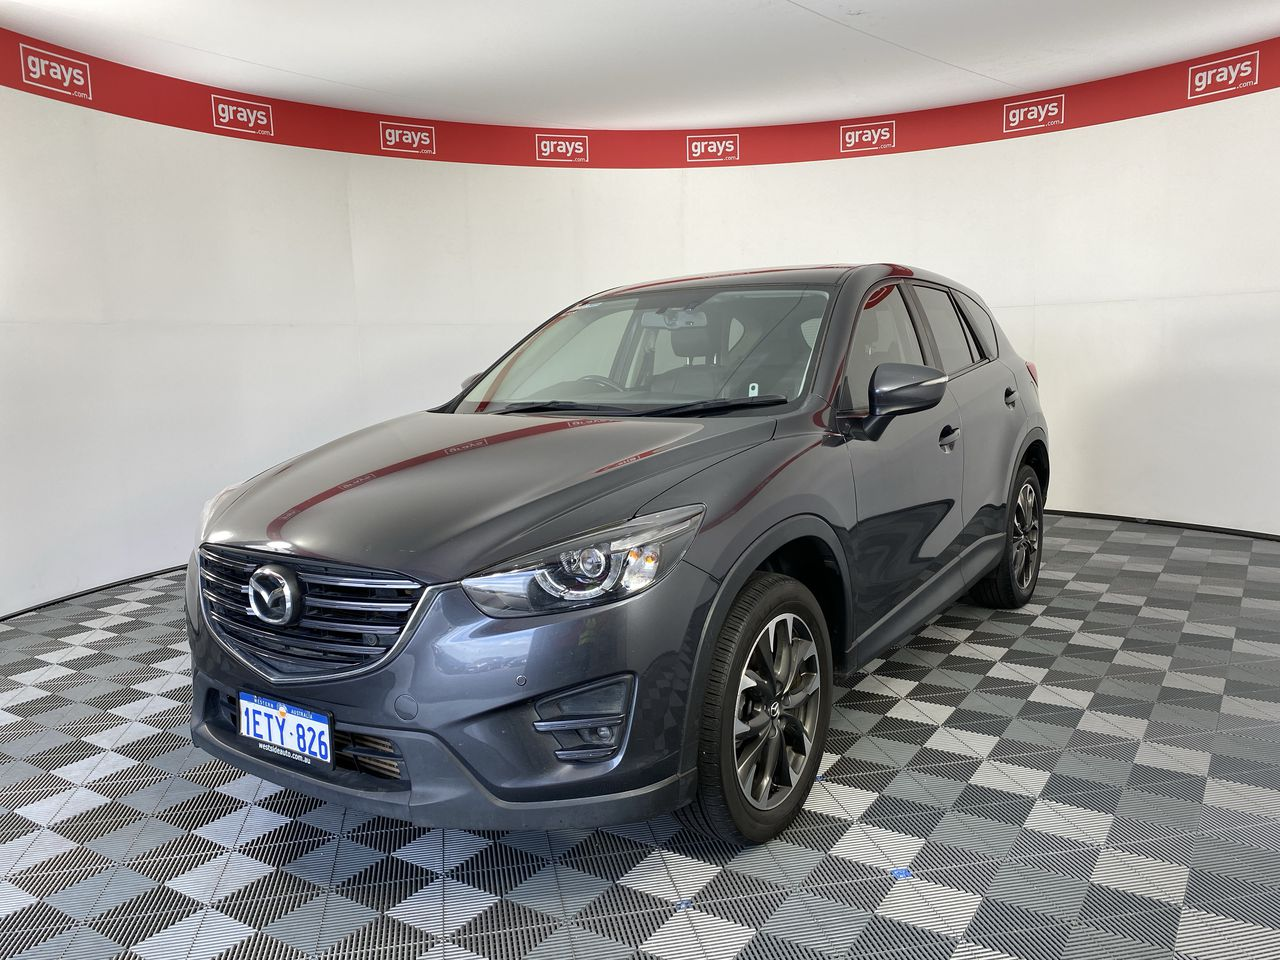 2015 Mazda CX-5 Grand Touring Turbo Diesel Automatic Wagon 130328 Kms